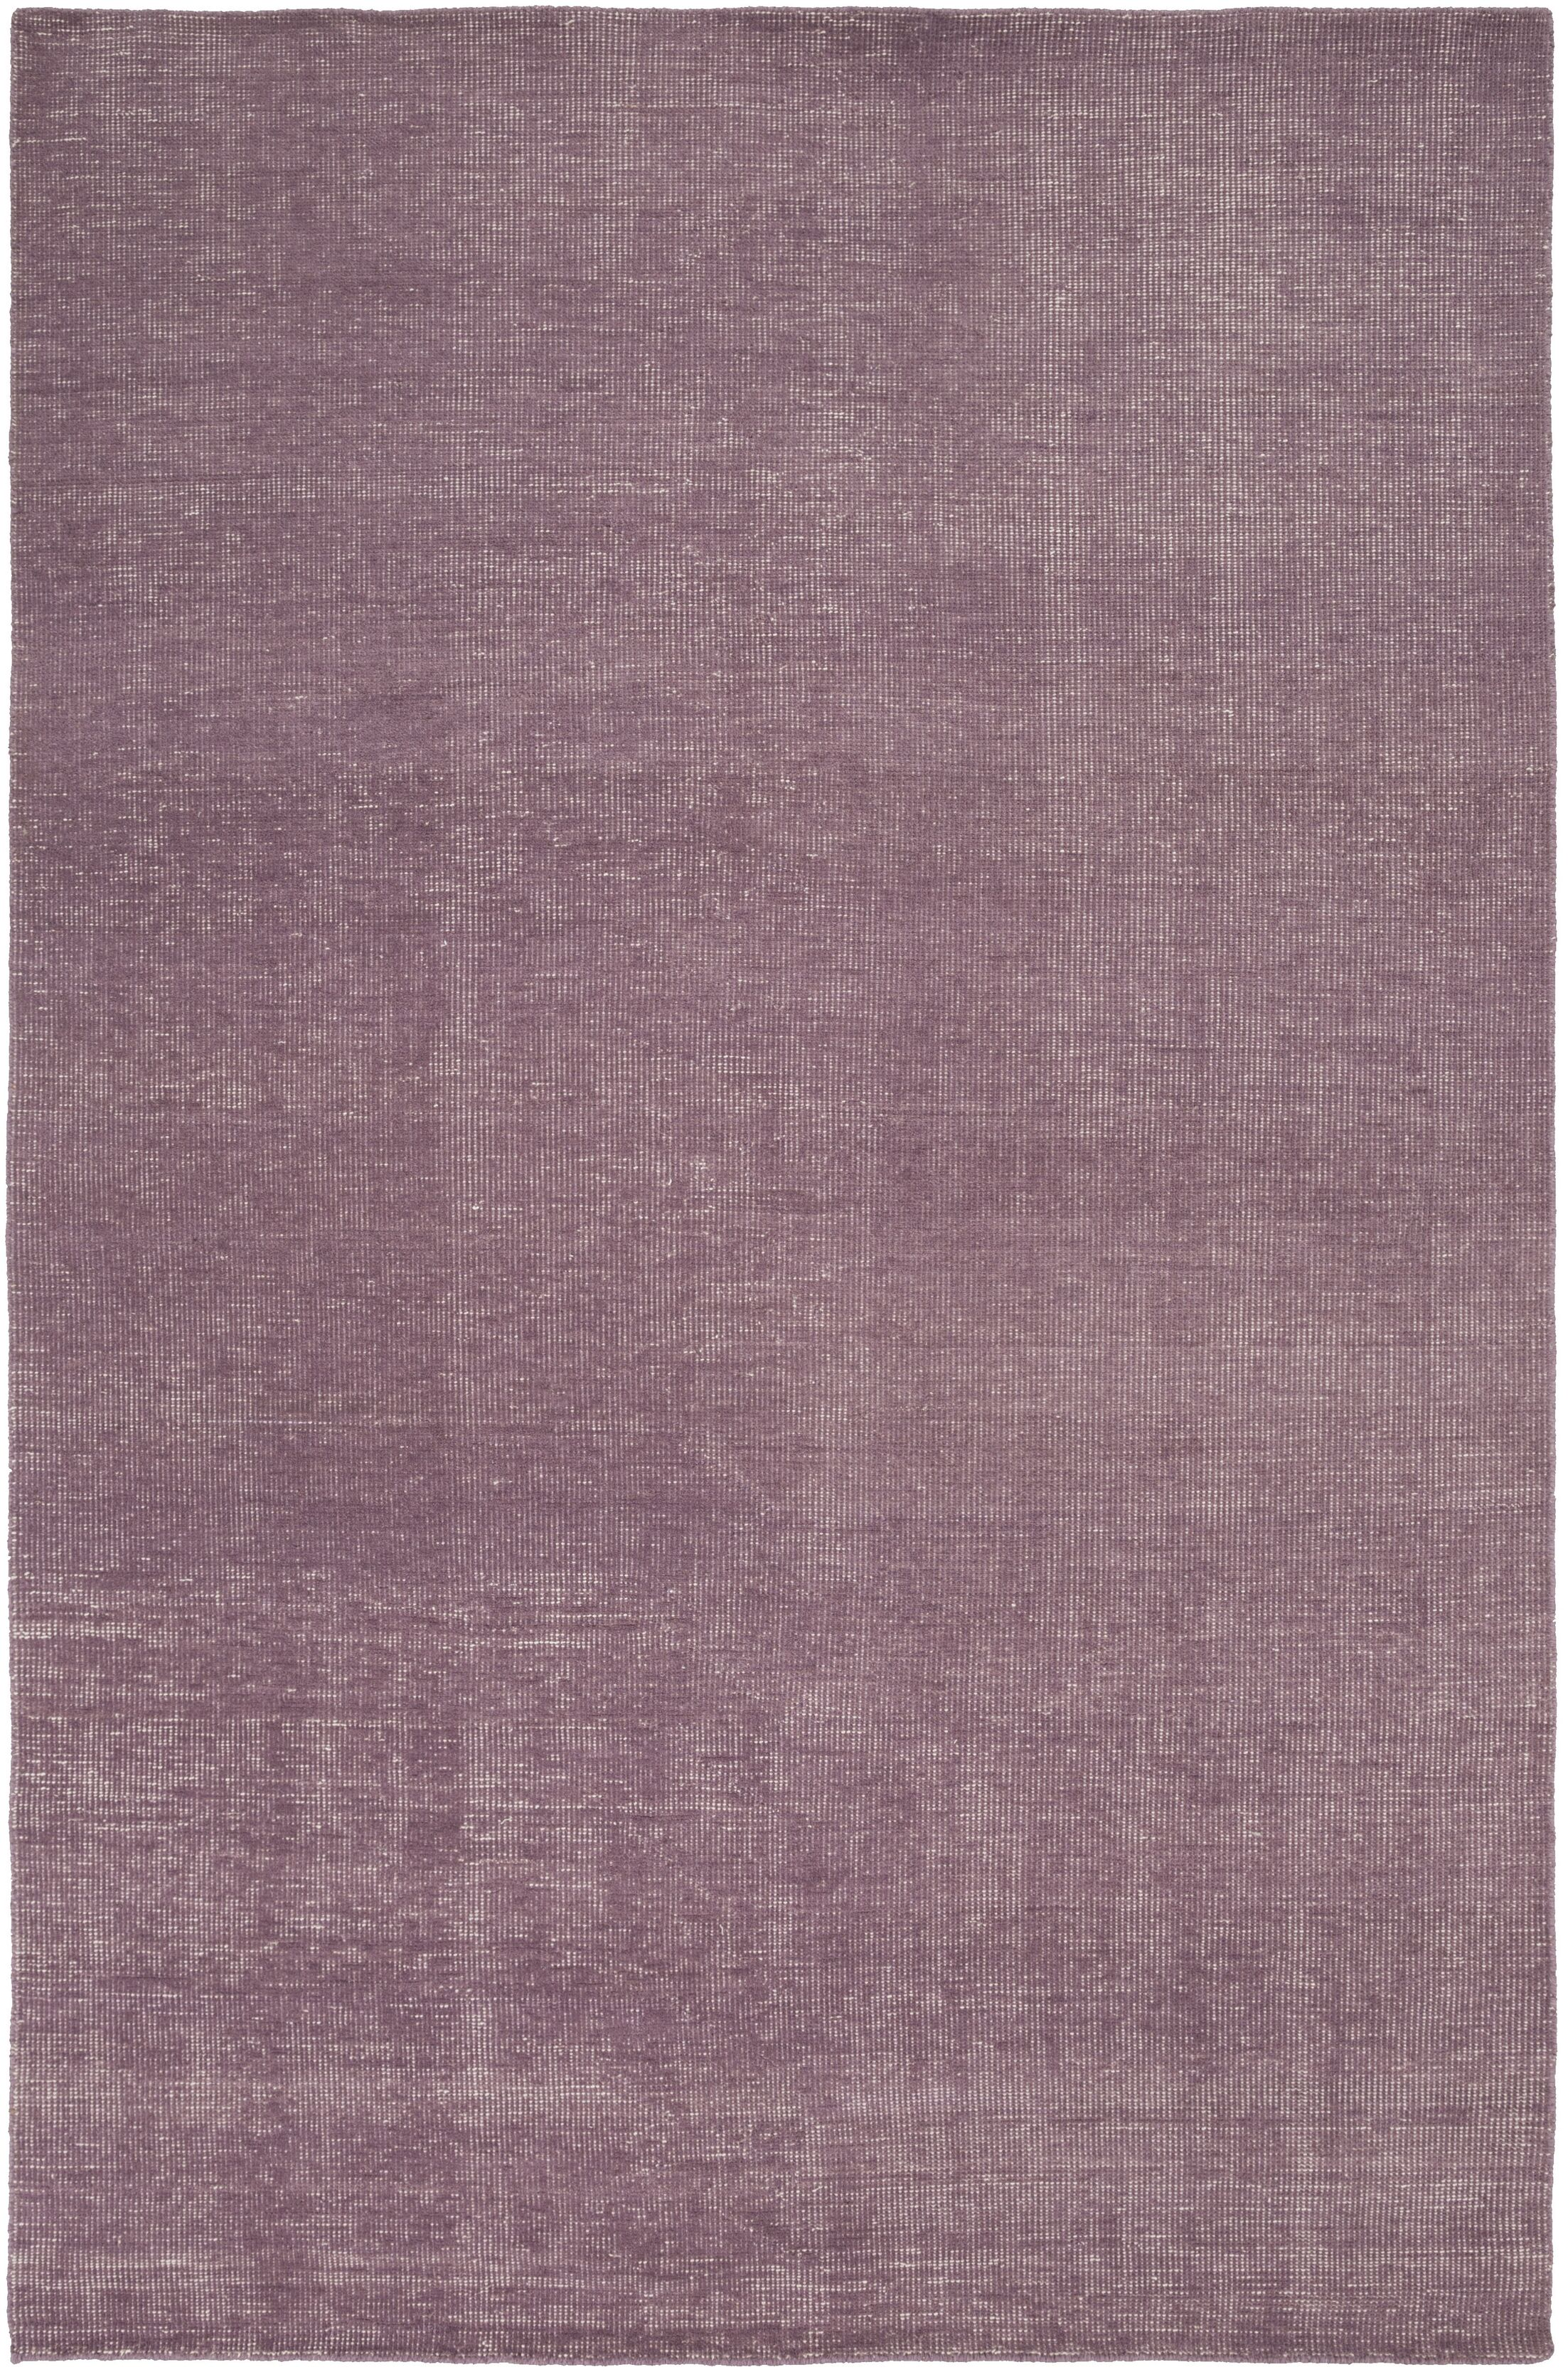 Eberly Mauve Solid Area Rug Rug Size: Rectangle 5'6